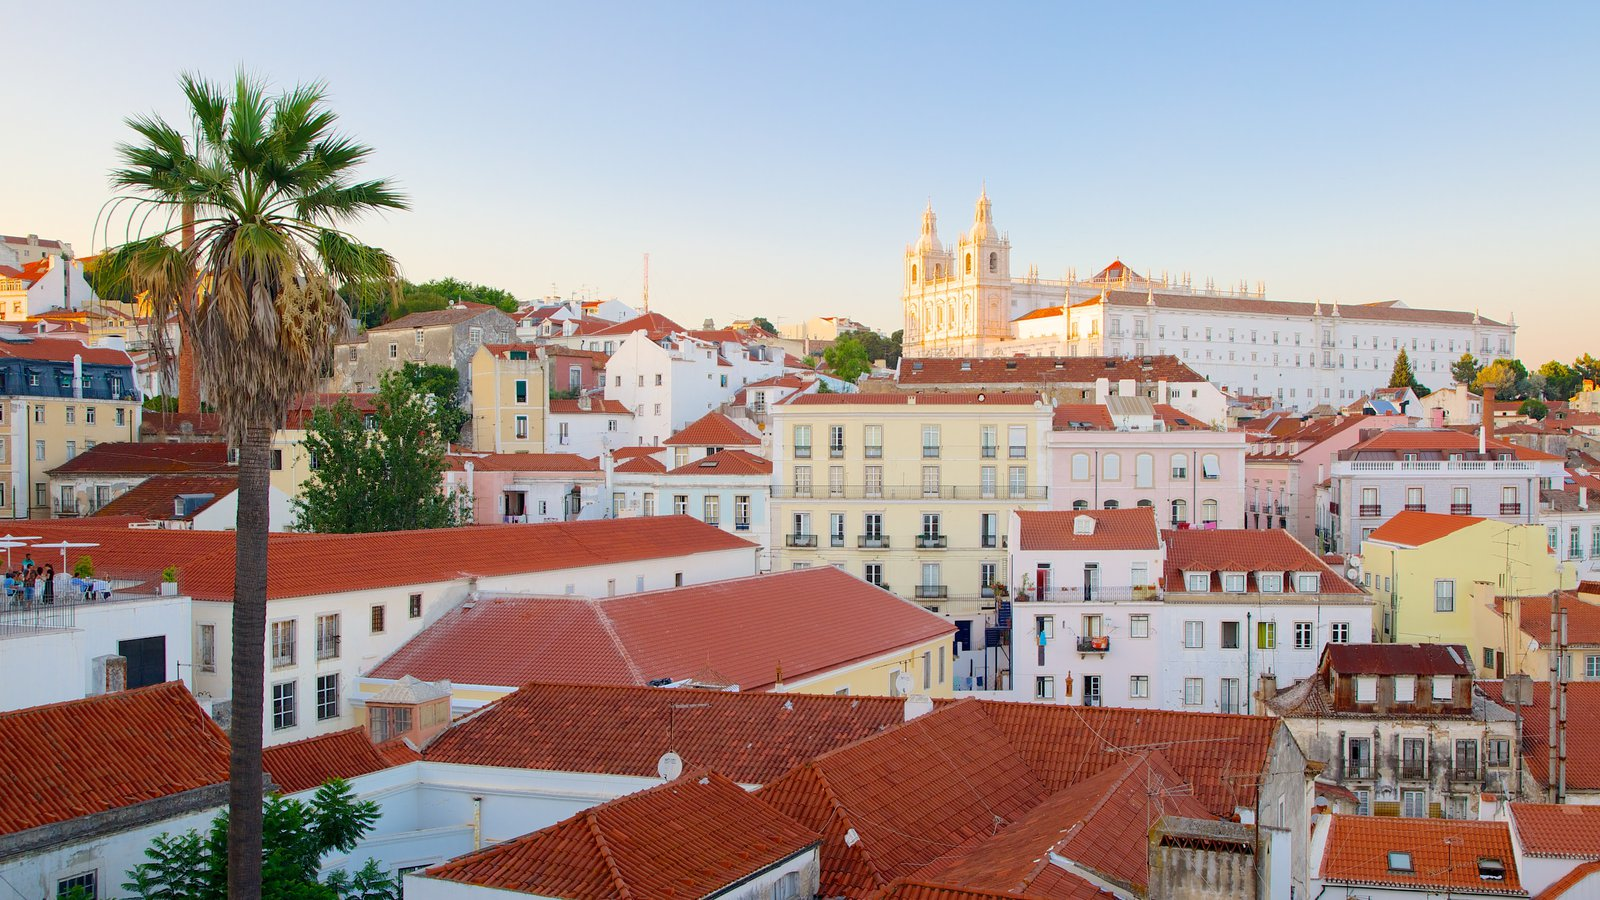 Alfama showing a city and heritage architecture